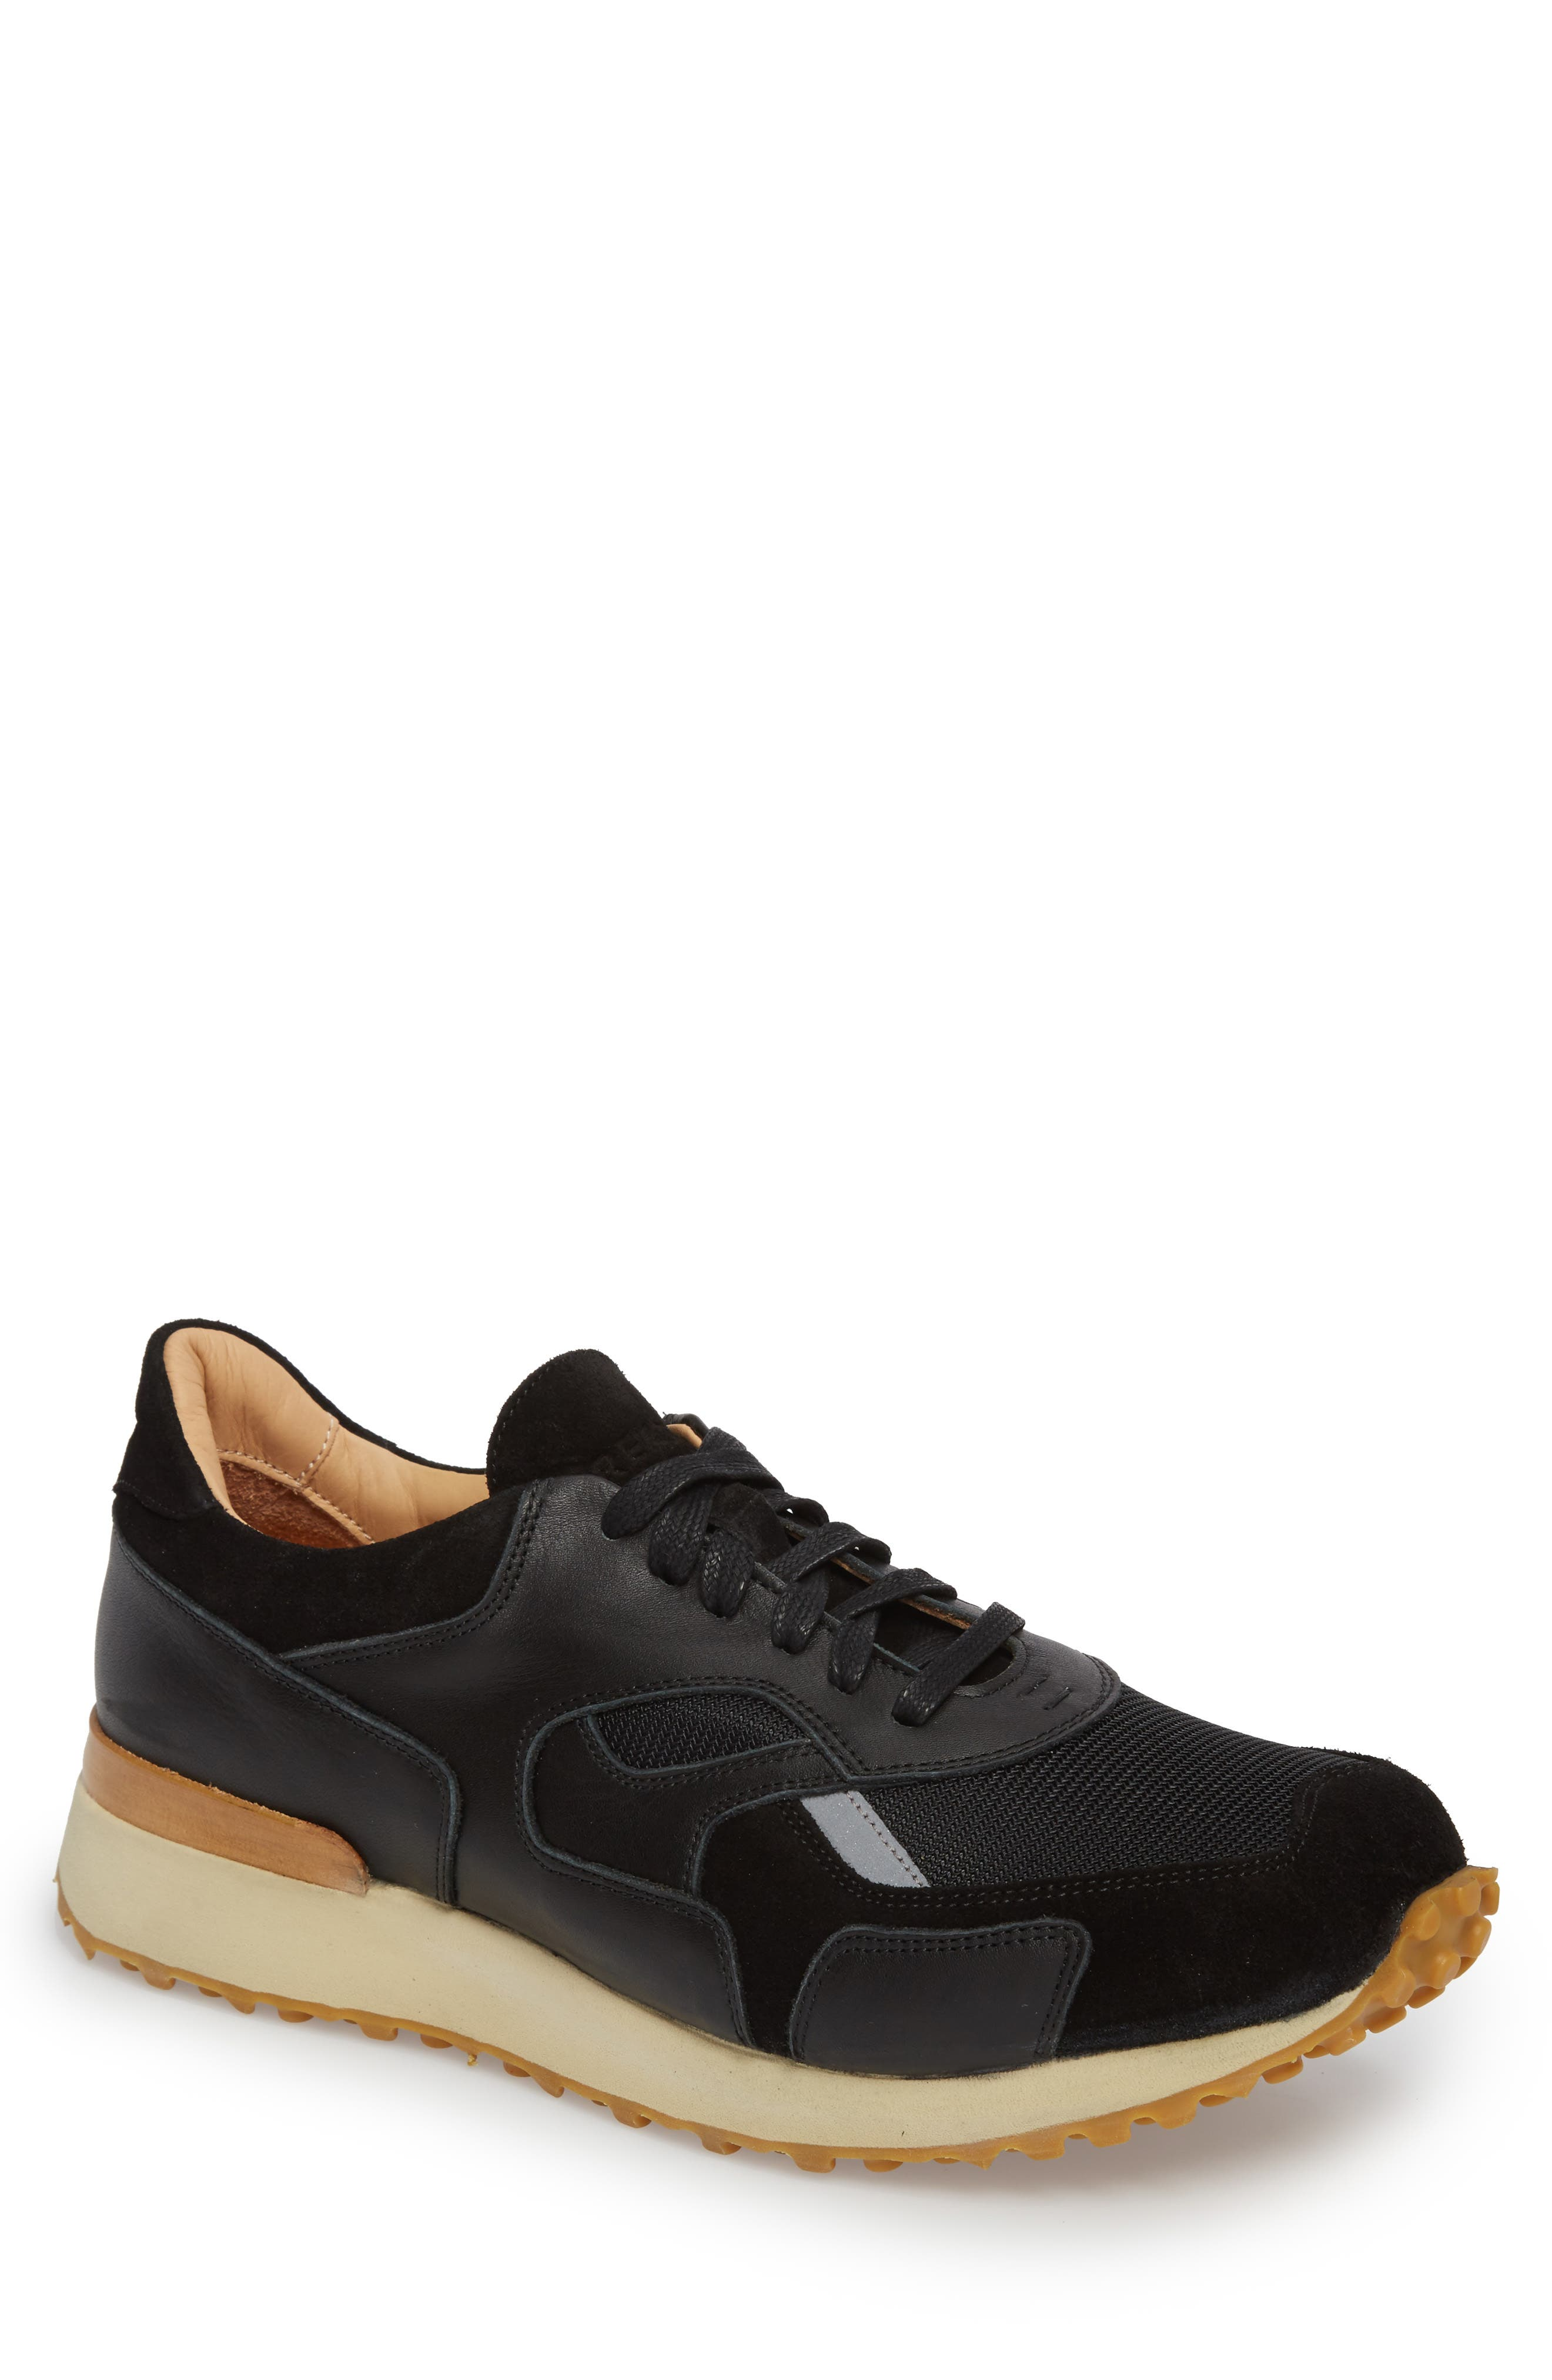 Main Image - Greats The Pronto Sneaker (Men)